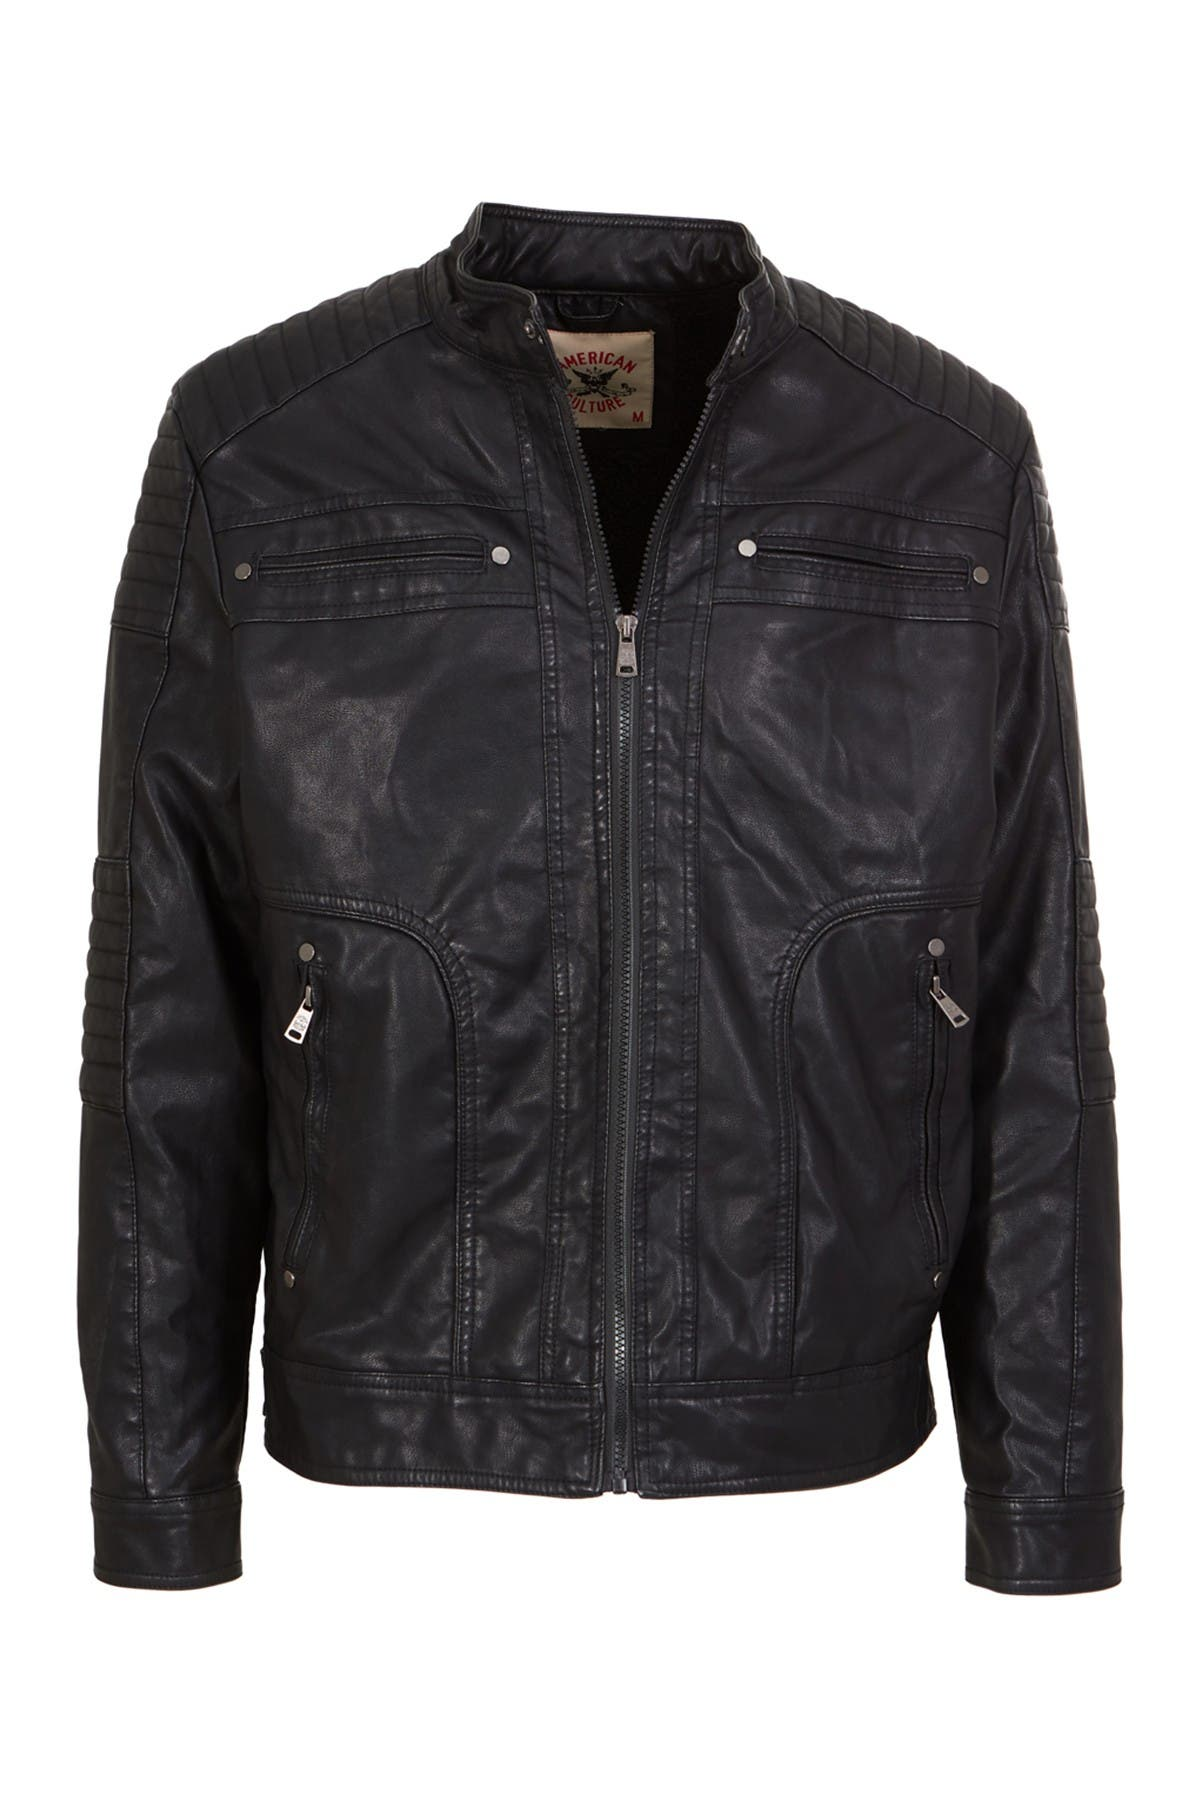 Image of AMERICAN CULTURE Zip Front Faux Leather Jacket